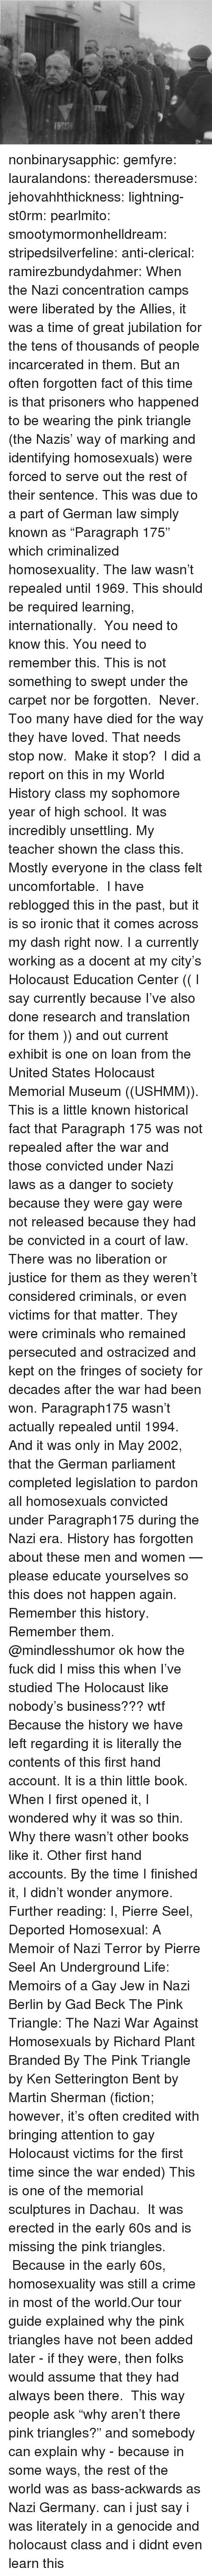 "Books, Crime, and Ironic: nonbinarysapphic:  gemfyre:  lauralandons:  thereadersmuse:  jehovahhthickness:  lightning-st0rm:  pearlmito:  smootymormonhelldream:  stripedsilverfeline:  anti-clerical:  ramirezbundydahmer:  When the Nazi concentration camps were liberated by the Allies, it was a time of great jubilation for the tens of thousands of people incarcerated in them. But an often forgotten fact of this time is that prisoners who happened to be wearing the pink triangle (the Nazis' way of marking and identifying homosexuals) were forced to serve out the rest of their sentence. This was due to a part of German law simply known as ""Paragraph 175"" which criminalized homosexuality. The law wasn't repealed until 1969.  This should be required learning, internationally.   You need to know this. You need to remember this. This is not something to swept under the carpet nor be forgotten.  Never. Too many have died for the way they have loved. That needs stop now.  Make it stop?   I did a report on this in my World History class my sophomore year of high school. It was incredibly unsettling.  My teacher shown the class this. Mostly everyone in the class felt uncomfortable.   I have reblogged this in the past, but it is so ironic that it comes across my dash right now. I a currently working as a docent at my city's Holocaust Education Center (( I say currently because I've also done research and translation for them )) and out current exhibit is one on loan from the United States Holocaust Memorial Museum ((USHMM)). This is a little known historical fact that Paragraph 175 was not repealed after the war and those convicted under Nazi laws as a danger to society because they were gay were not released because they had be convicted in a court of law. There was no liberation or justice for them as they weren't considered criminals, or even victims for that matter. They were criminals who remained persecuted and ostracized and kept on the fringes of society for decades after the war had been won. Paragraph175 wasn't actually repealed until 1994. And it was only in May 2002, that the German parliament completed legislation to pardon all homosexuals convicted under Paragraph175 during the Nazi era. History has forgotten about these men and women — please educate yourselves so this does not happen again. Remember this history. Remember them.  @mindlesshumor ok how the fuck did I miss this when I've studied The Holocaust like nobody's business??? wtf  Because the history we have left regarding it is literally the contents of this first hand account. It is a thin little book. When I first opened it, I wondered why it was so thin. Why there wasn't other books like it. Other first hand accounts. By the time I finished it, I didn't wonder anymore.  Further reading: I, Pierre Seel, Deported Homosexual: A Memoir of Nazi Terror by Pierre Seel An Underground Life: Memoirs of a Gay Jew in Nazi Berlin by Gad Beck The Pink Triangle: The Nazi War Against Homosexuals by Richard Plant Branded By The Pink Triangle by Ken Setterington Bent by Martin Sherman (fiction; however, it's often credited with bringing attention to gay Holocaust victims for the first time since the war ended)  This is one of the memorial sculptures in Dachau.  It was erected in the early 60s and is missing the pink triangles.  Because in the early 60s, homosexuality was still a crime in most of the world.Our tour guide explained why the pink triangles have not been added later - if they were, then folks would assume that they had always been there.  This way people ask ""why aren't there pink triangles?"" and somebody can explain why - because in some ways, the rest of the world was as bass-ackwards as Nazi Germany.   can i just say i was literately in a genocide and holocaust class and i didnt even learn this"